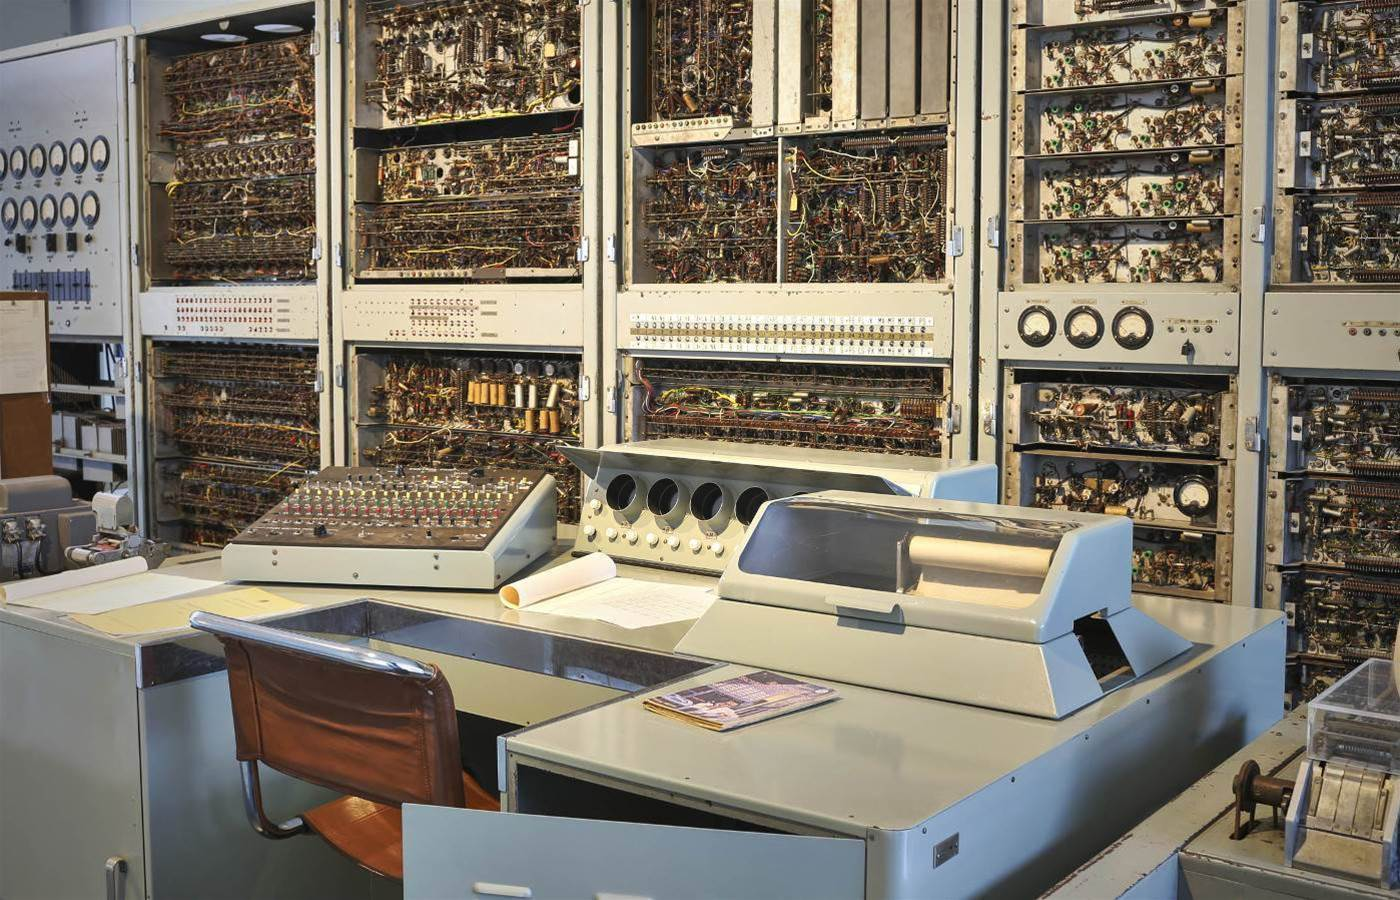 Australia's first computer moves into Melbourne museum